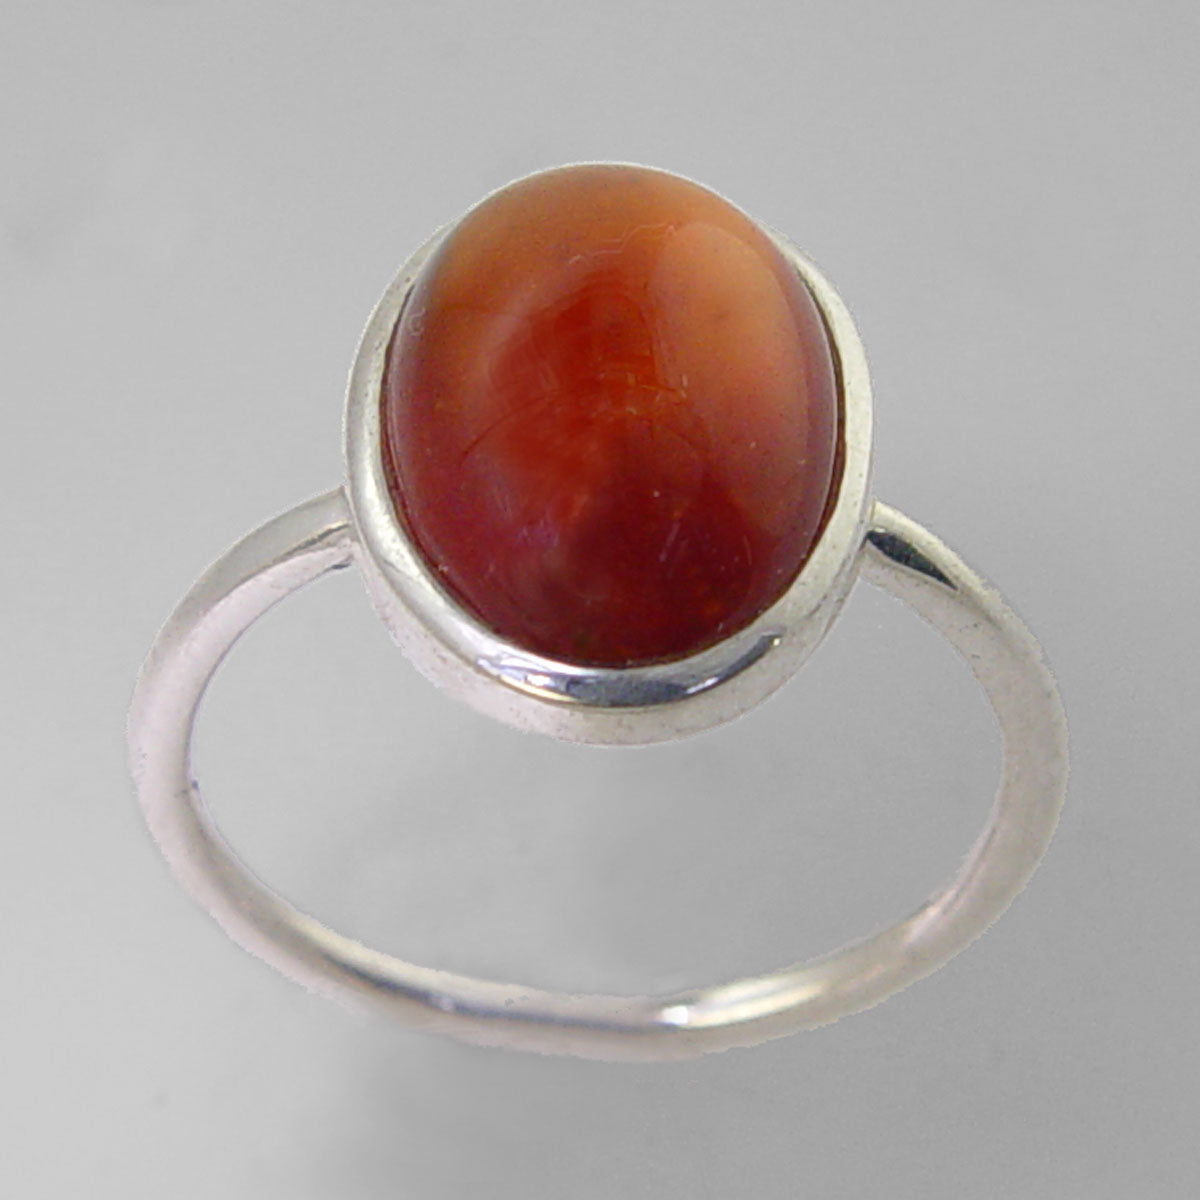 Cinnamon Hessonite Garnet 6.5 ct Oval Cab Sterling Silver Ring, Size 8.5